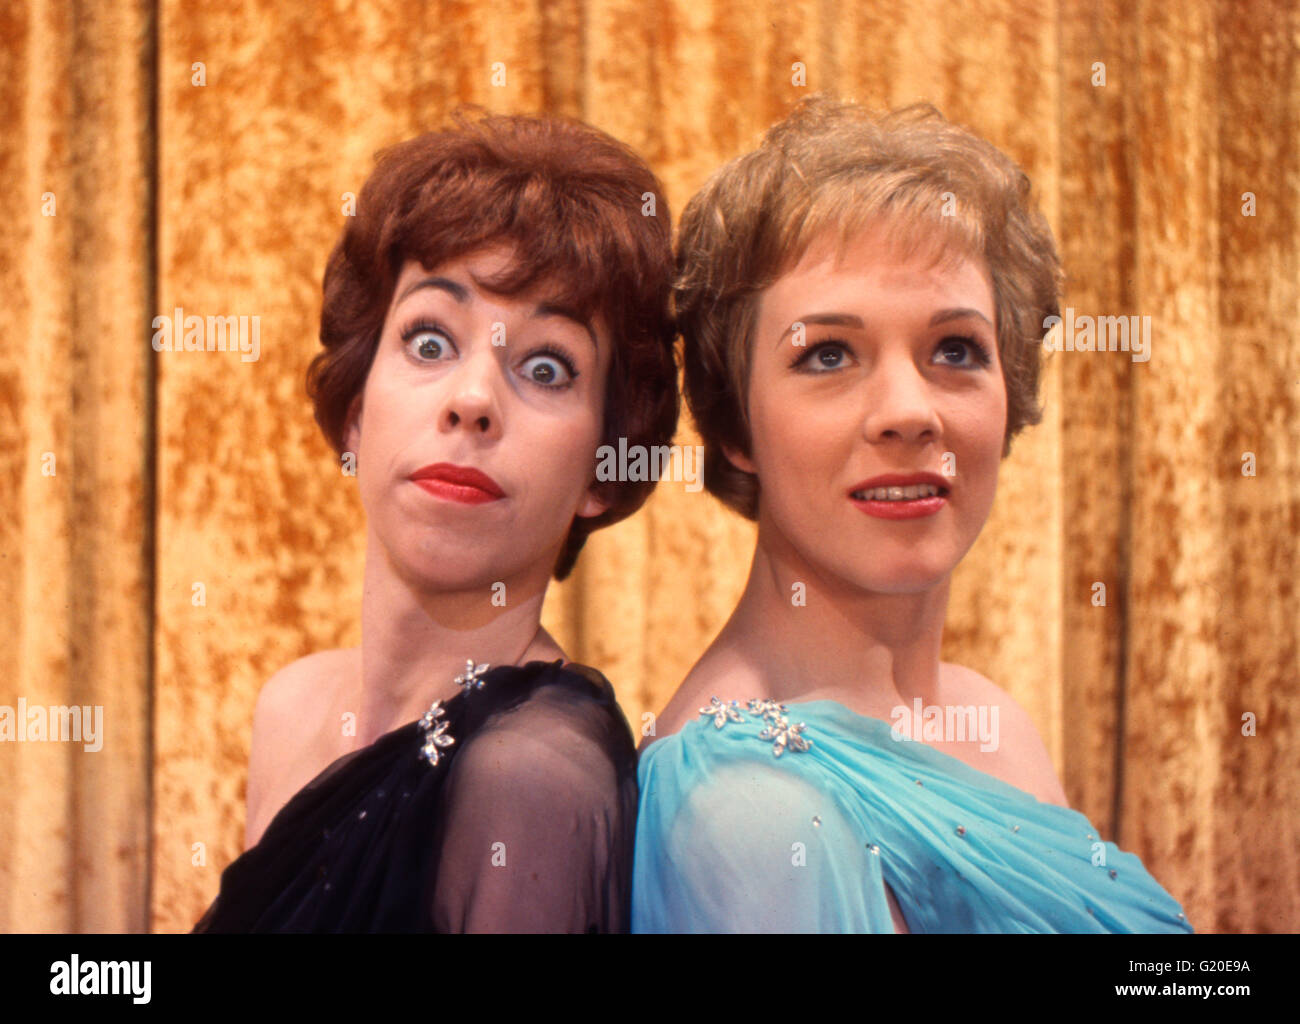 Julie Andrews and Carol Burnett - Stock Image